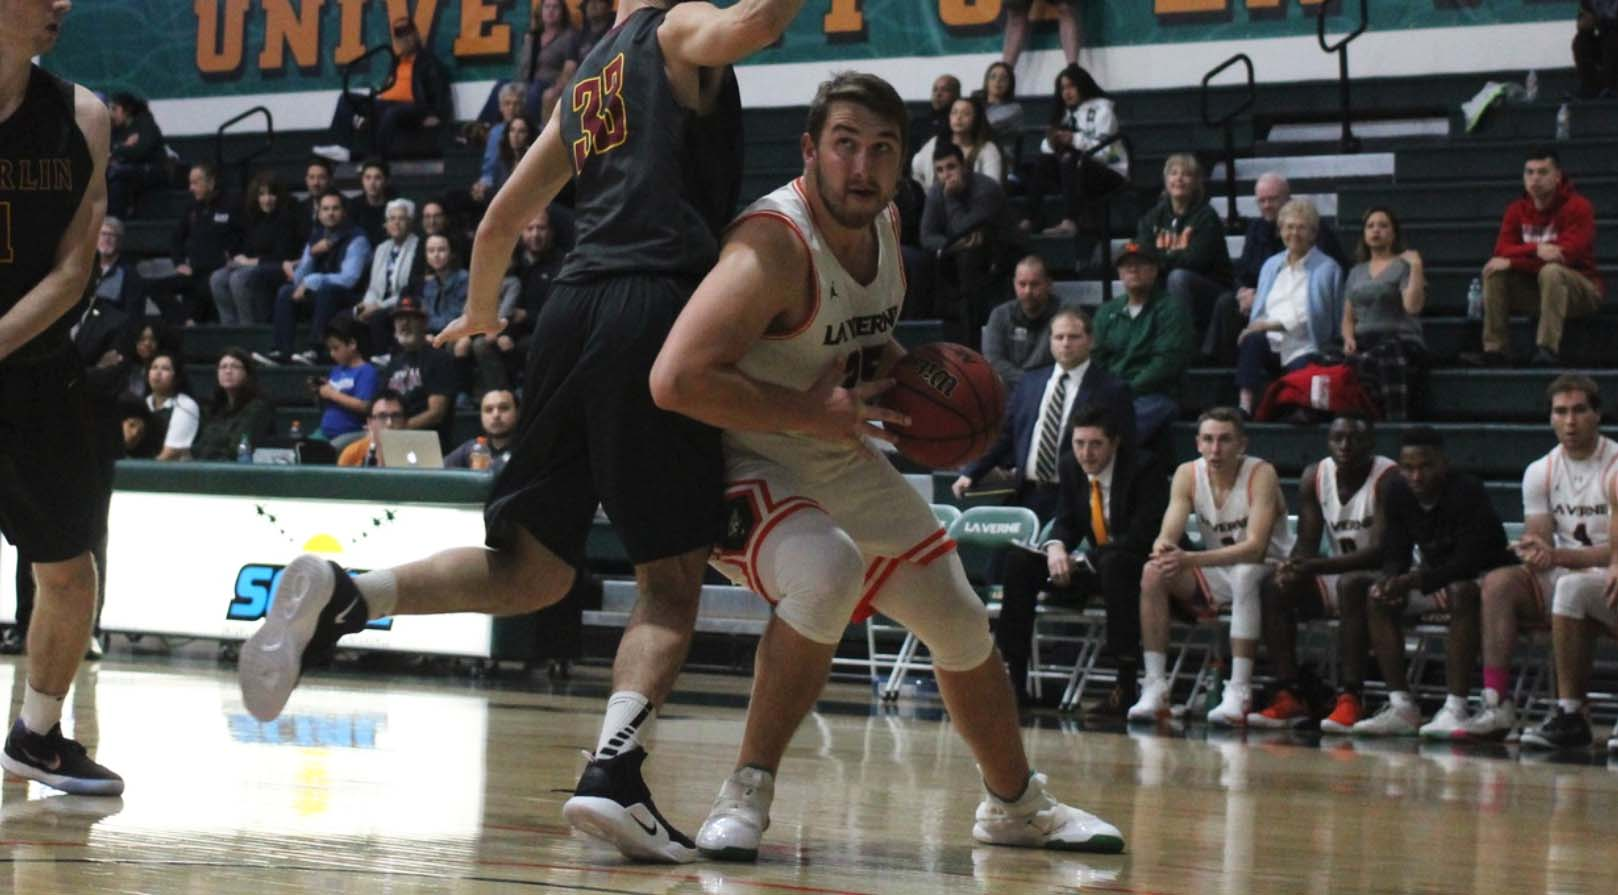 Gustafson notches double-double against No. 11 Whitworth